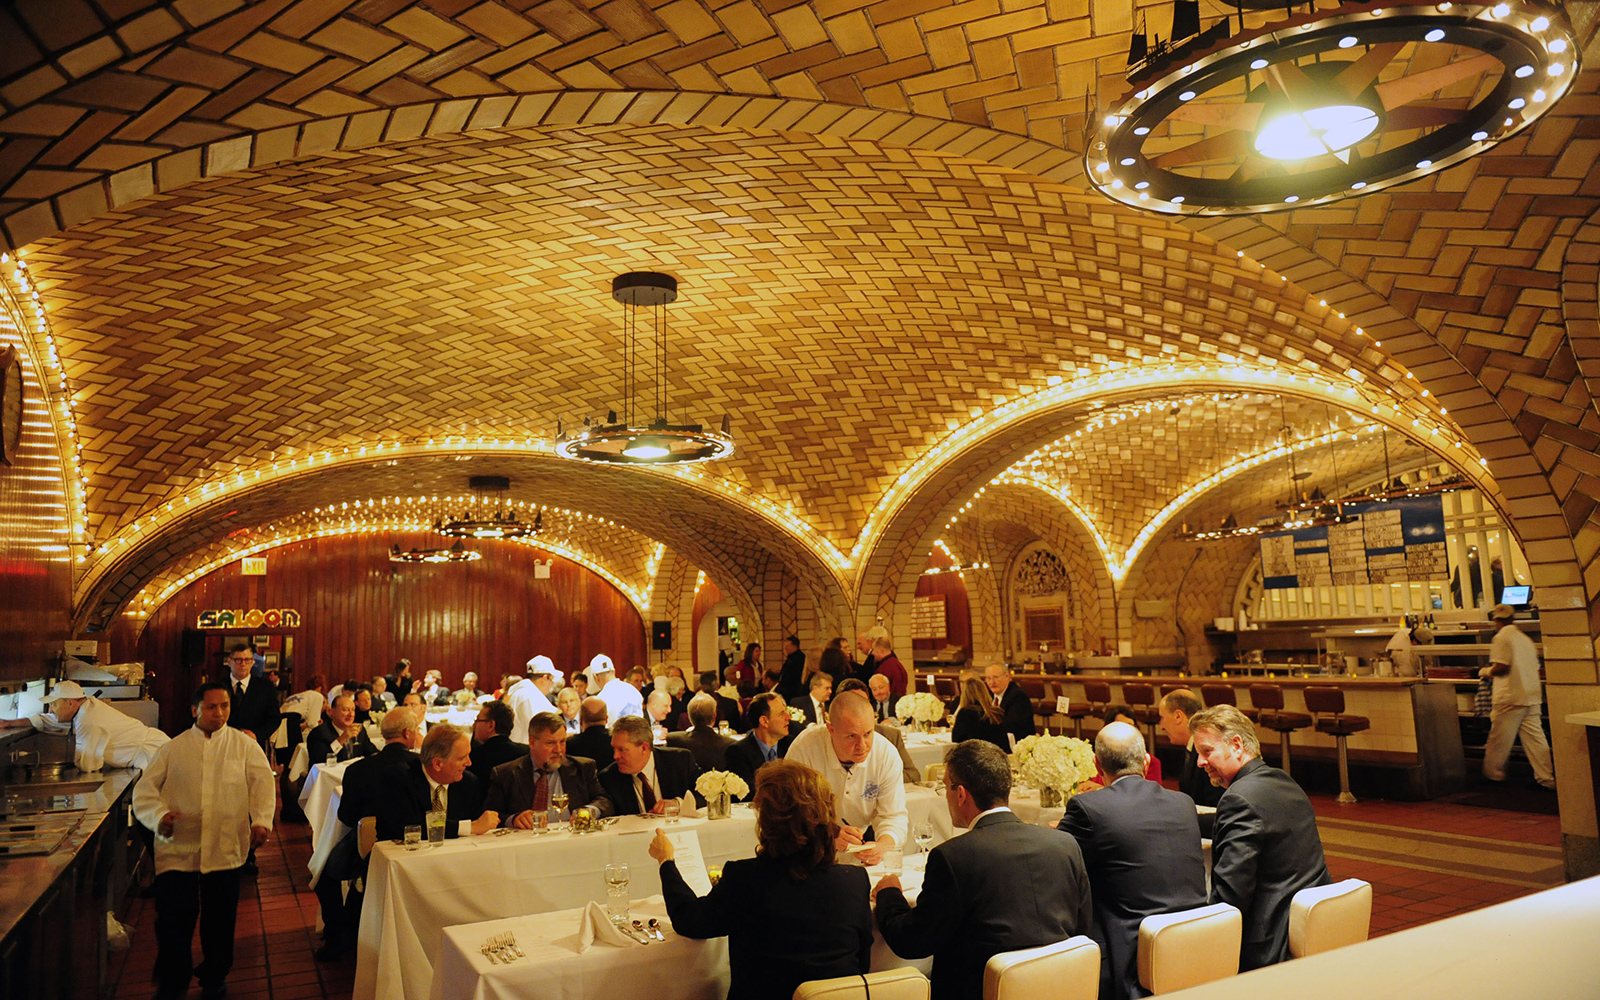 Best Old Restaurants and Bars in NYC: Grand Central Oyster Bar